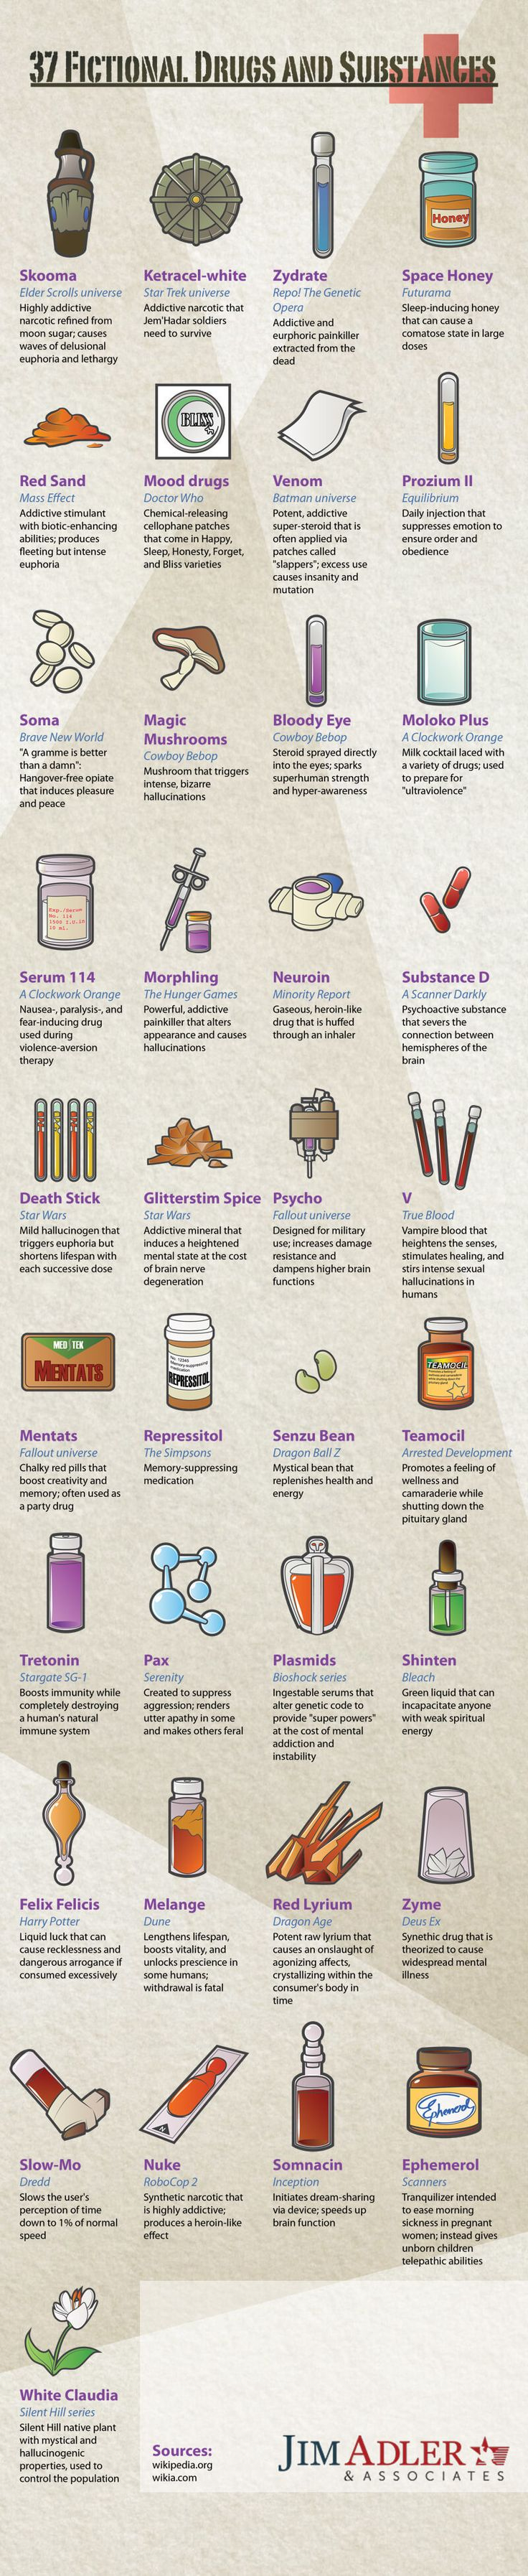 37 Fictional Drugs And Substances - Infographic - Writers Write